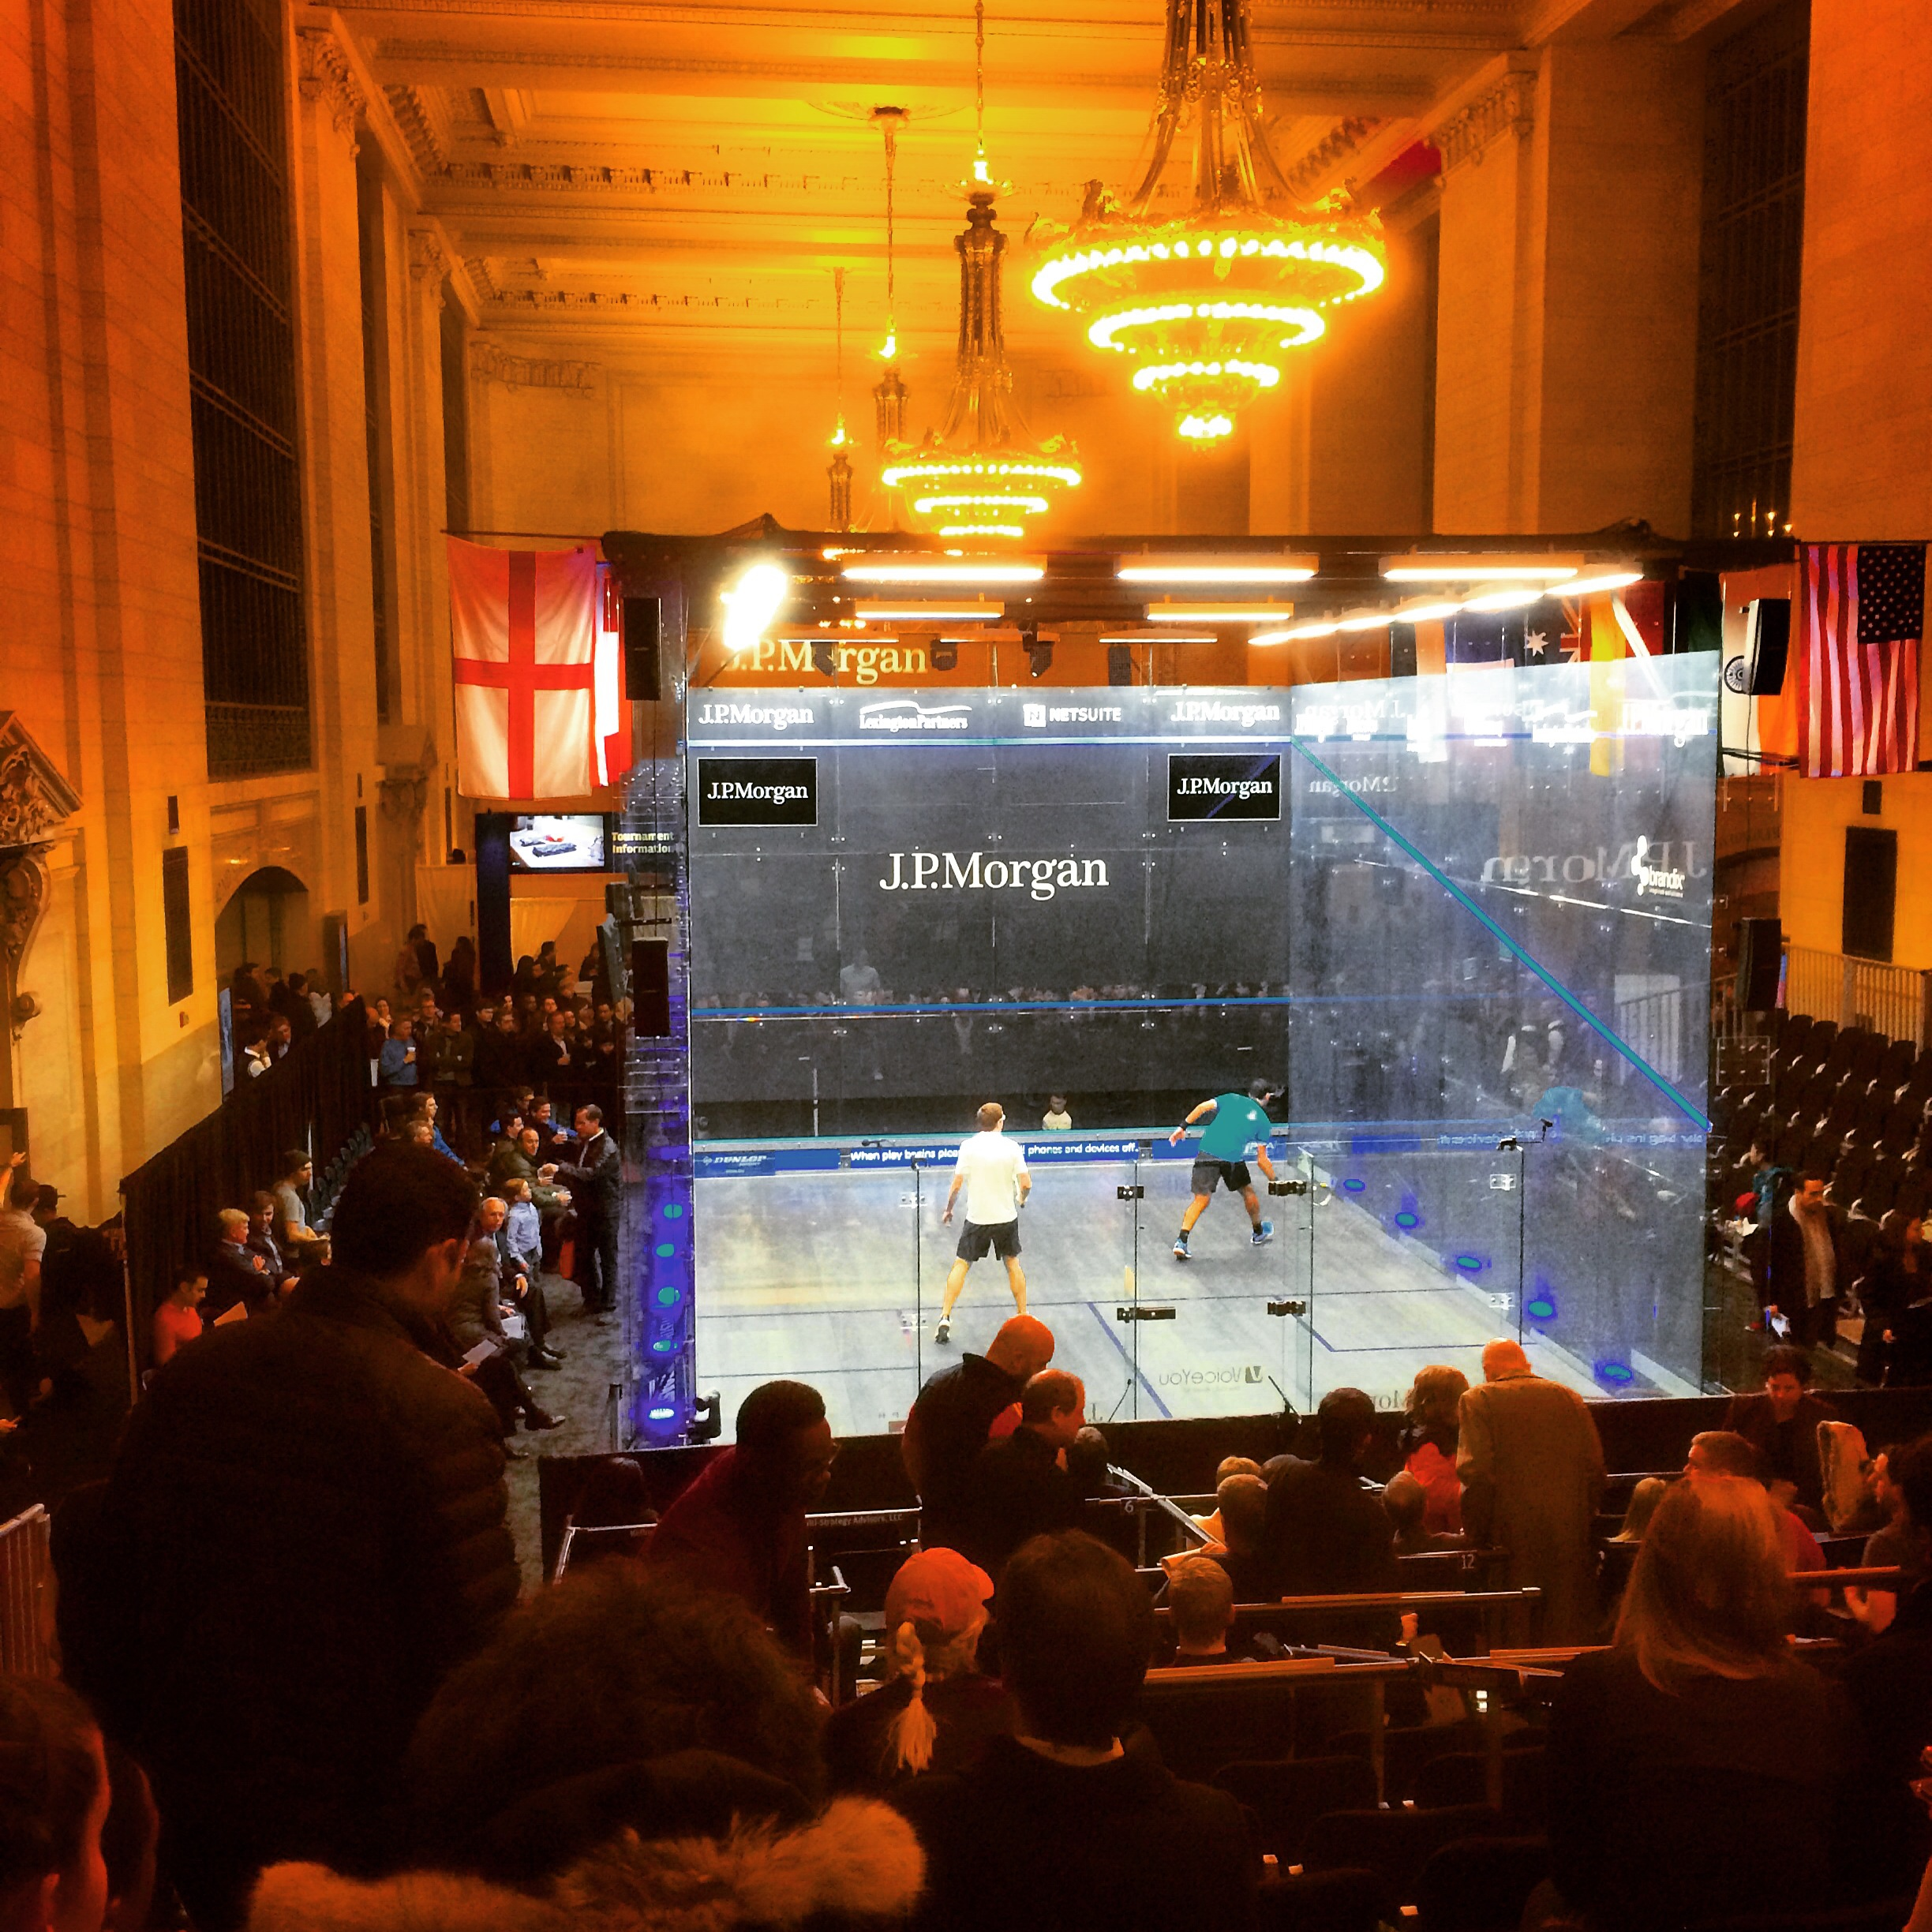 The coolest court around- in the middle of Grand Central Station NYC. Site of the main draw for the Tournament of Champions